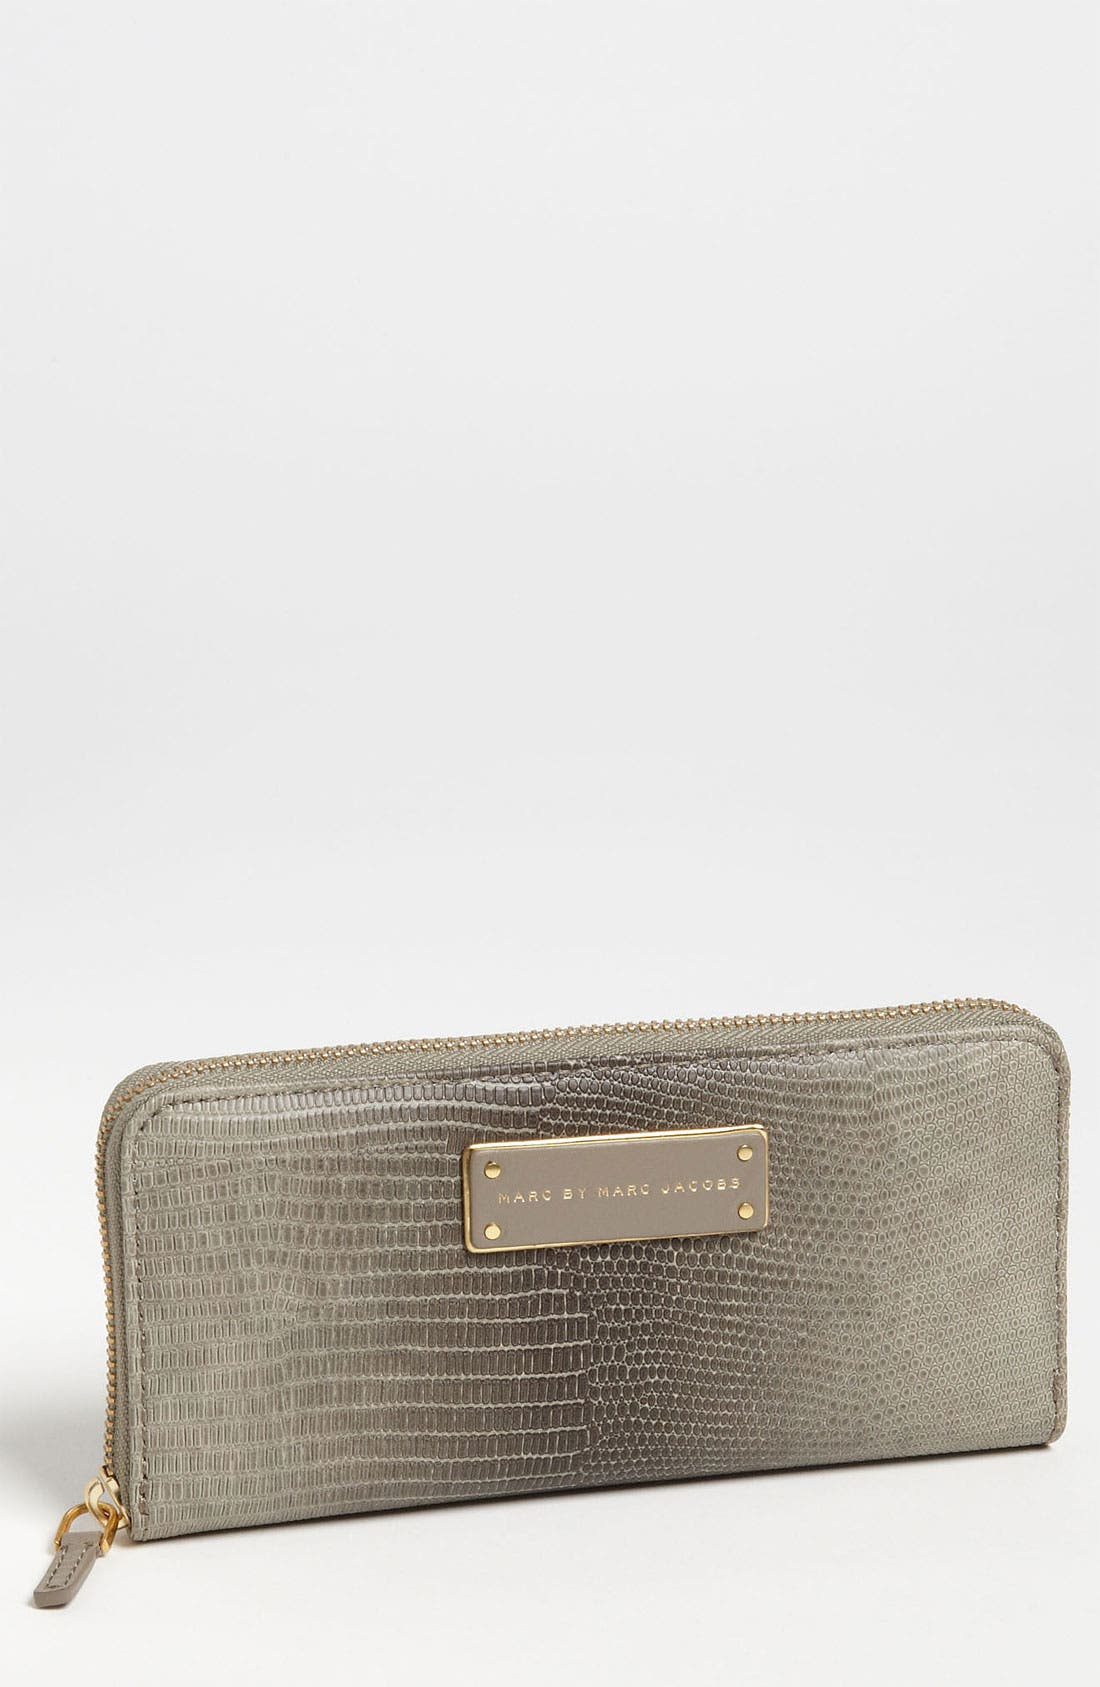 Main Image - MARC BY MARC JACOBS 'Take Me' Lizard Embossed Zip Around Wallet